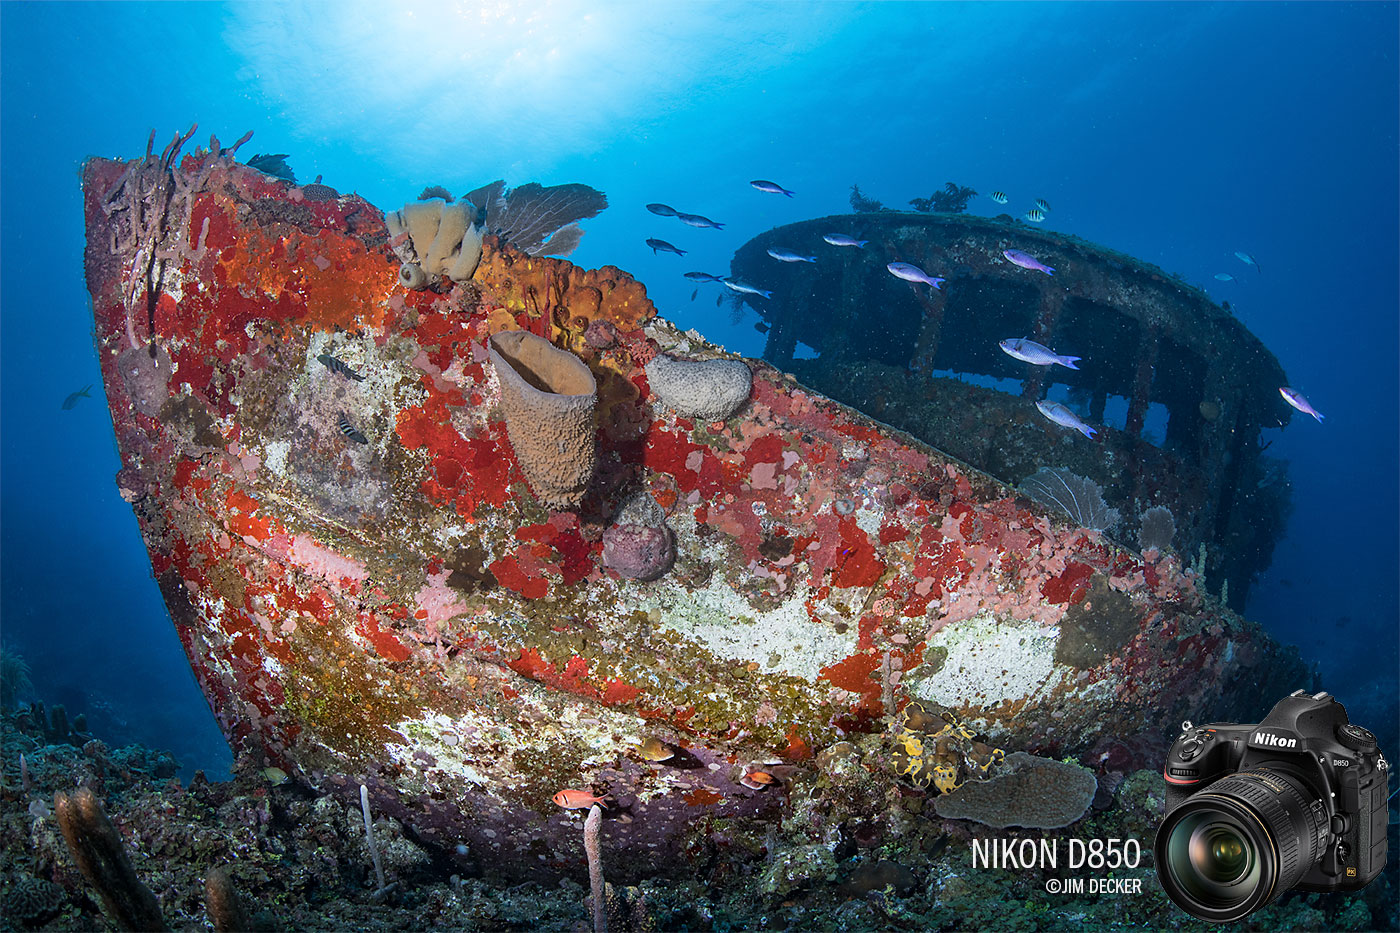 Nikon D850 Underwater Camera Review